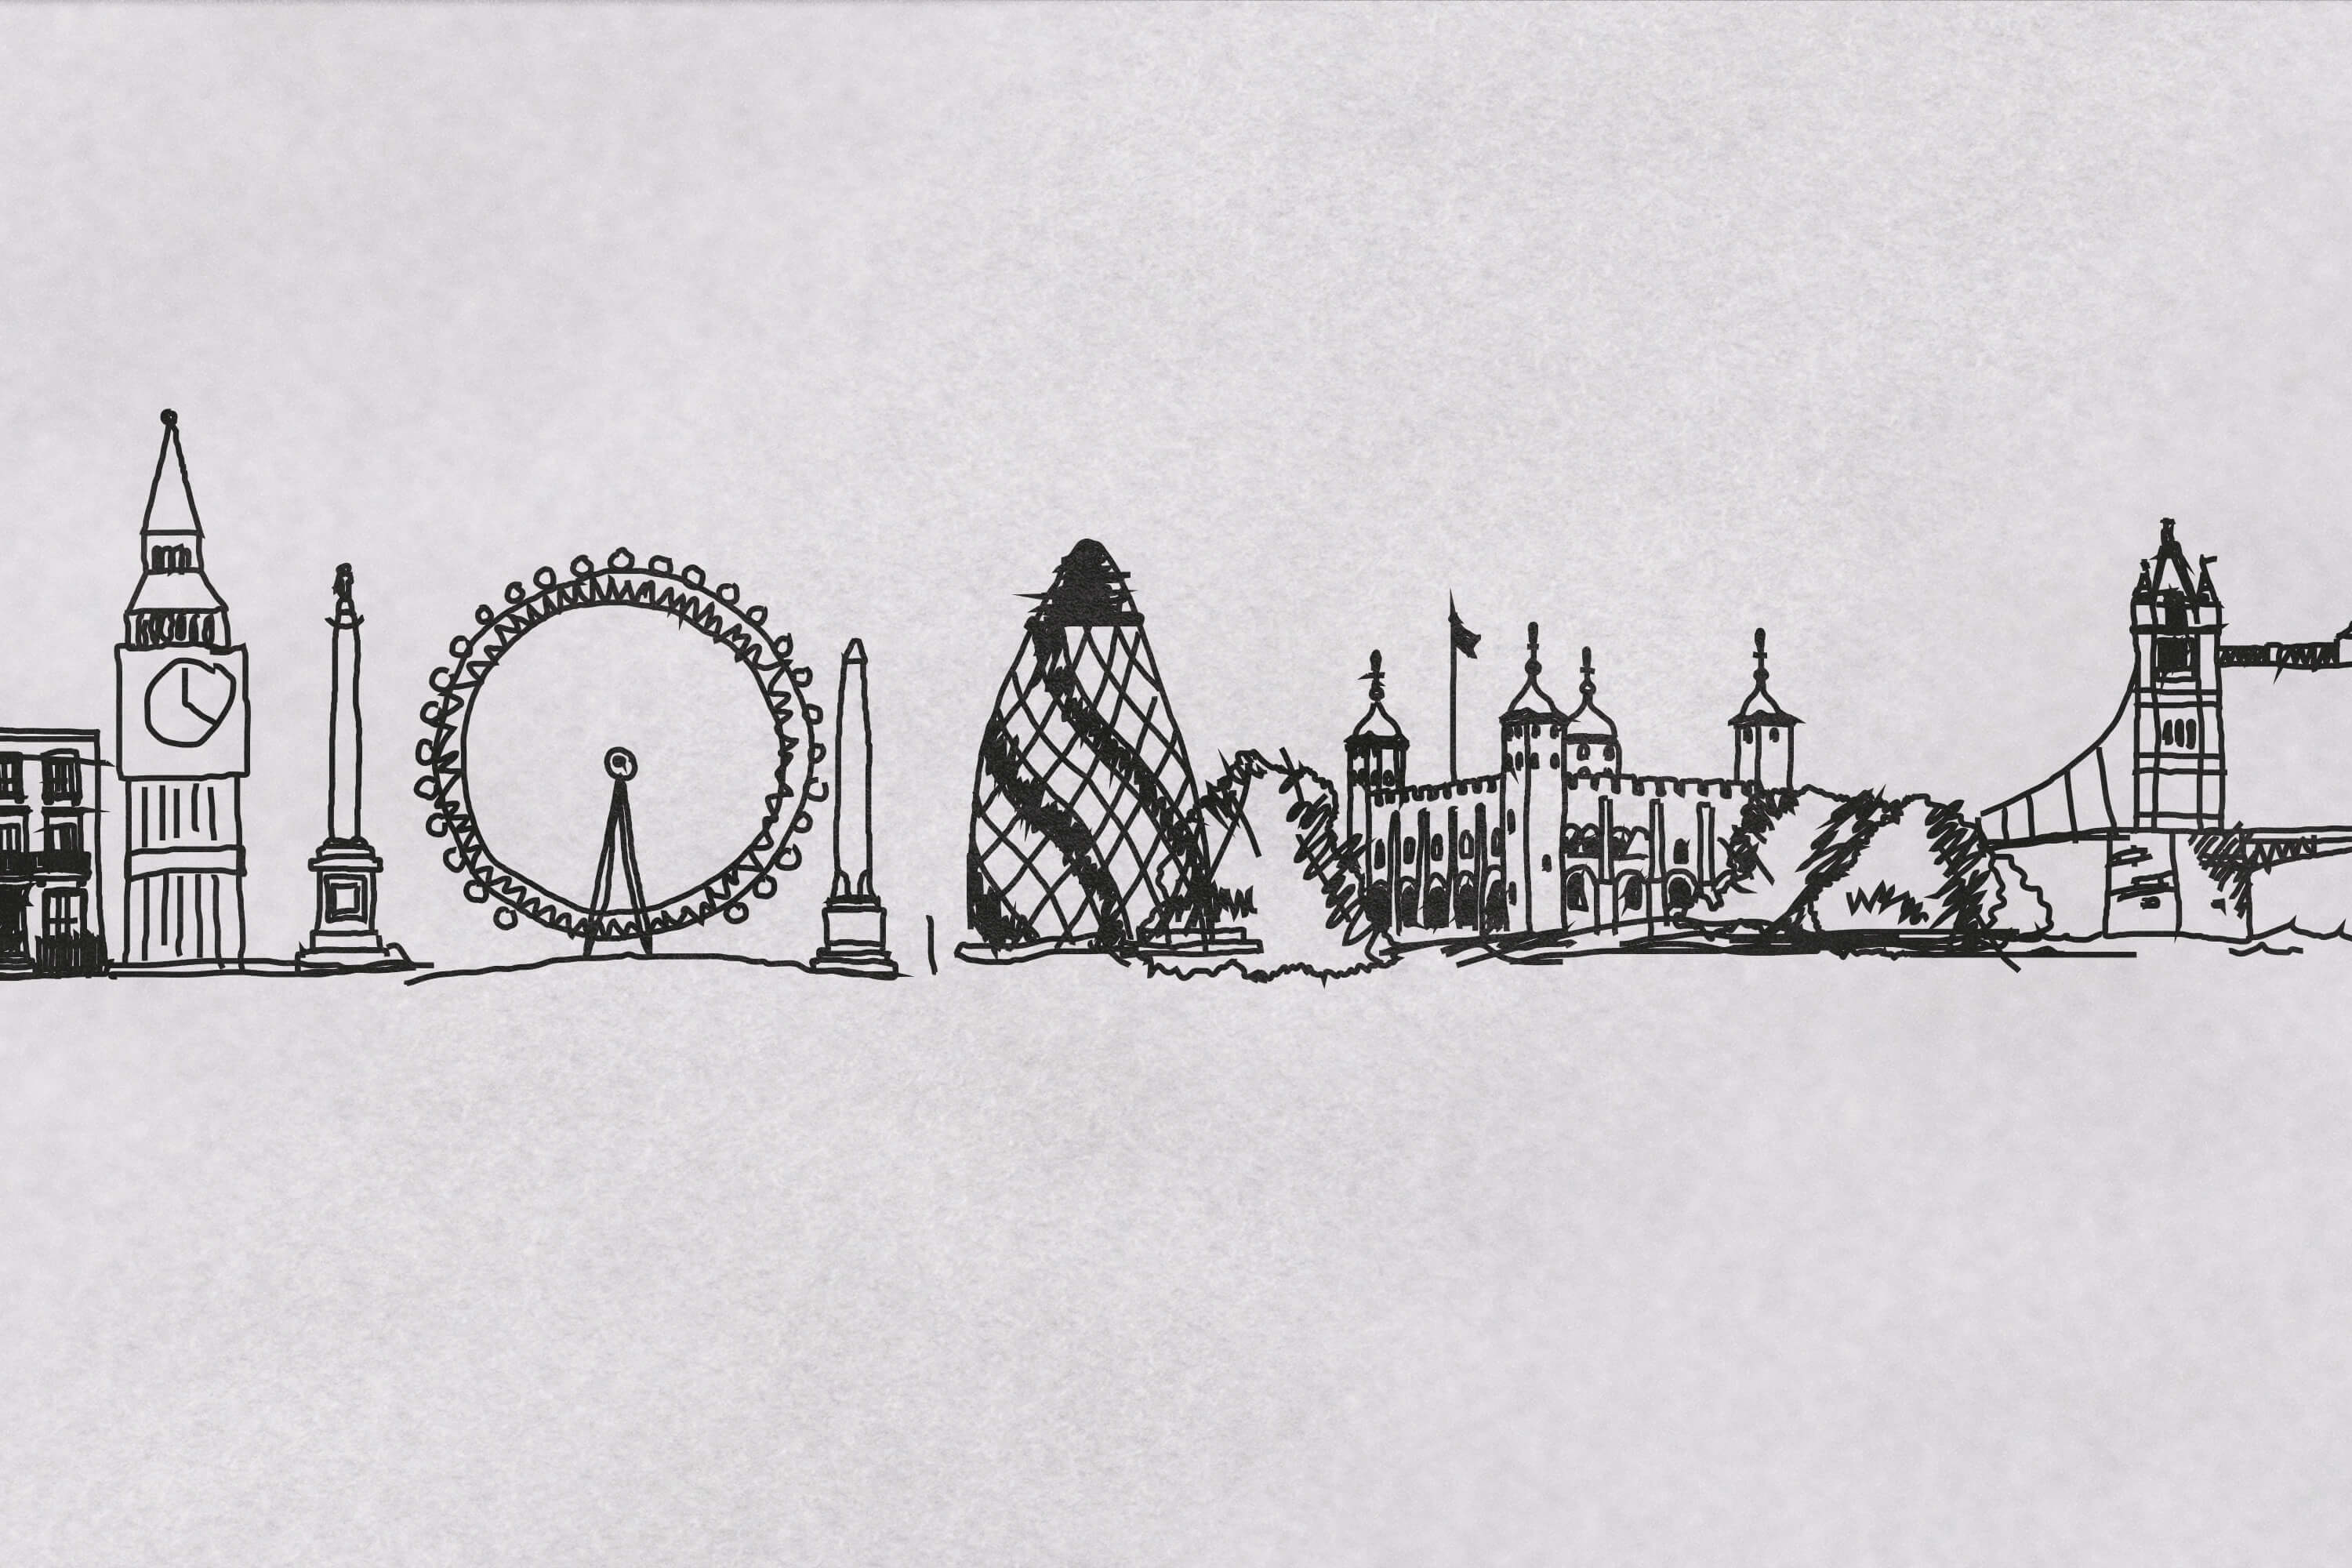 Detail of Lovework illustrated London skyline